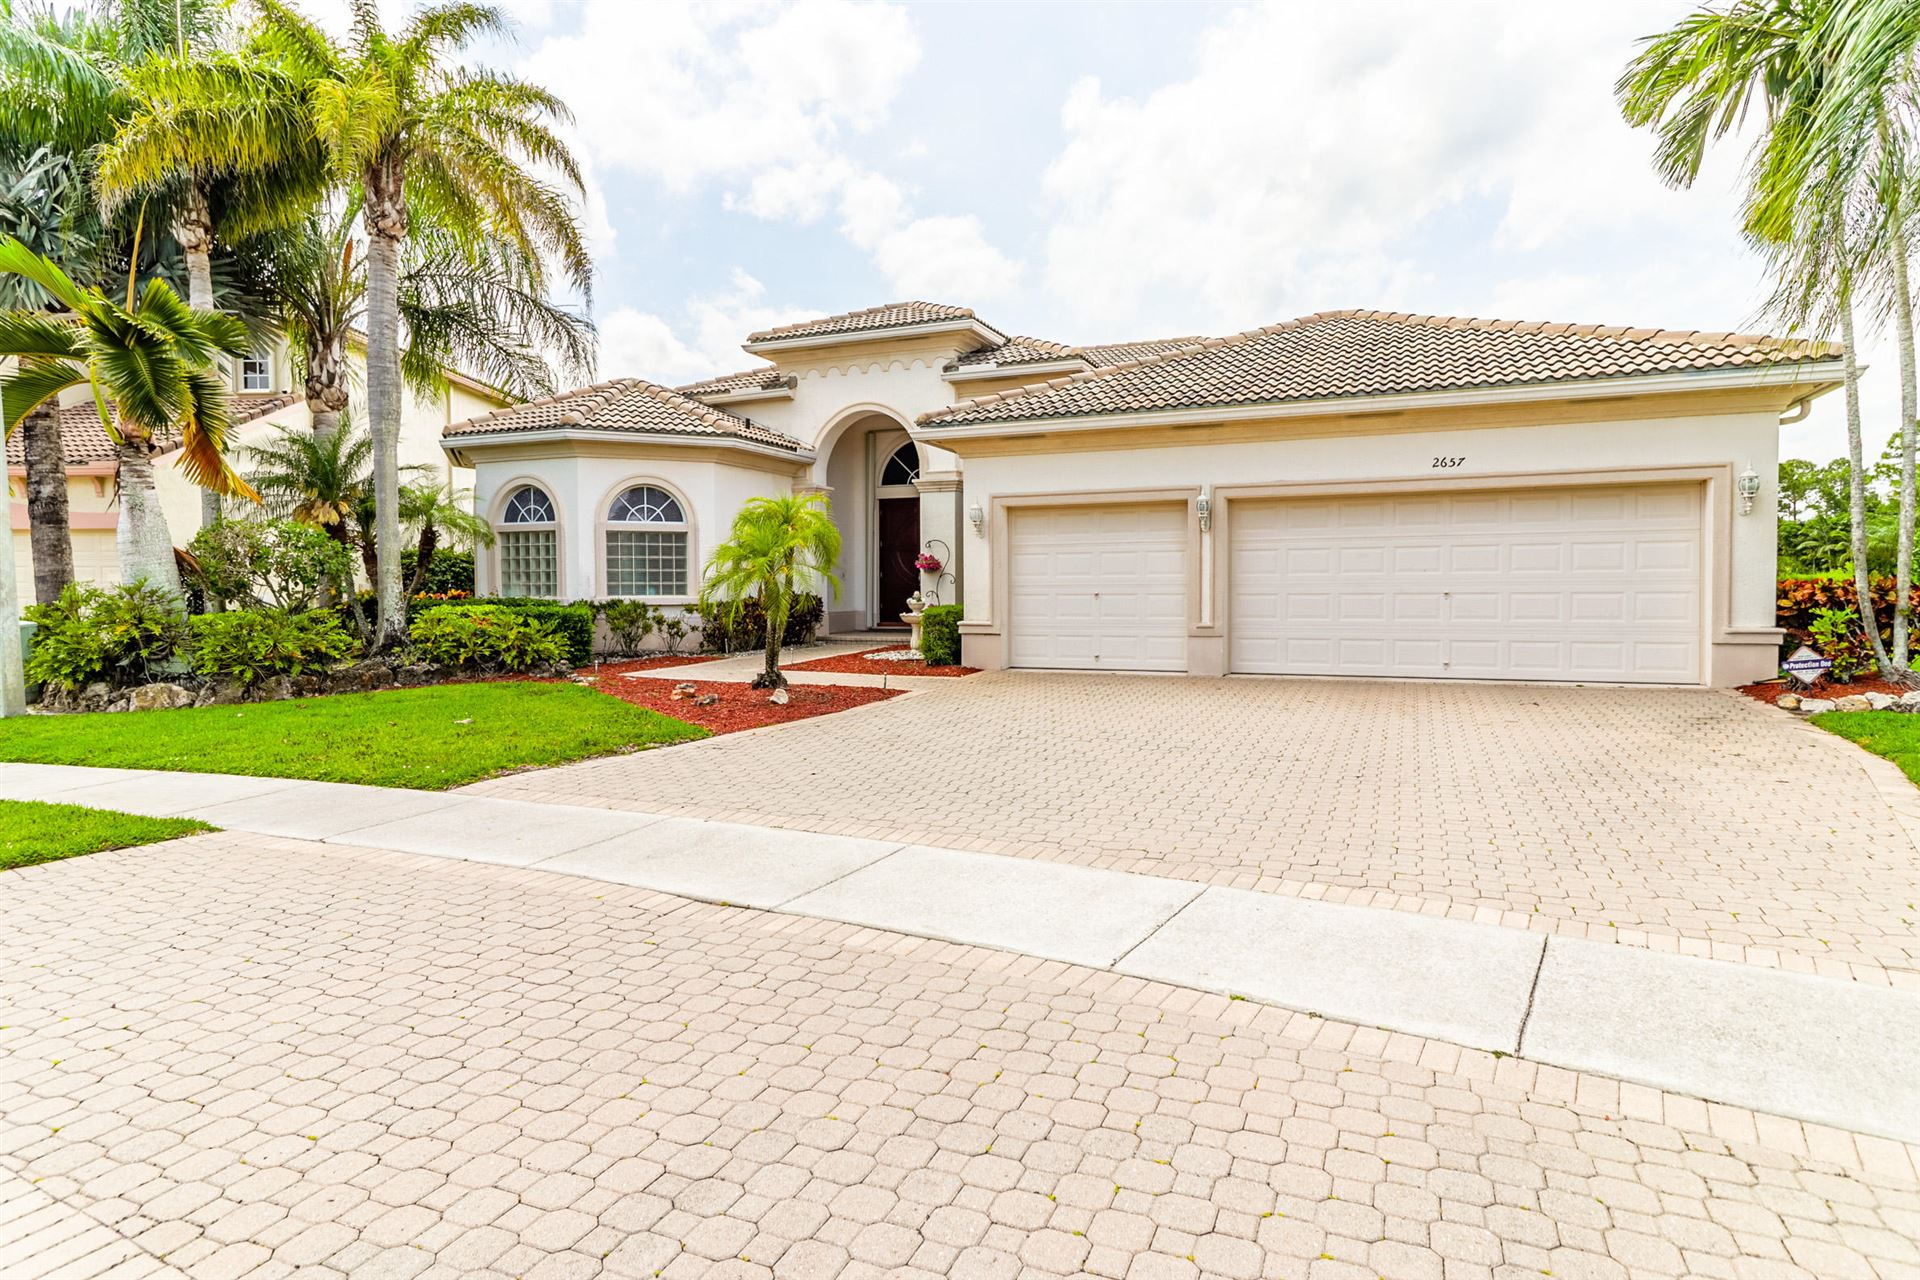 2657 Windwood Way, Royal Palm Beach, FL 33411 - MLS#: RX-10711403